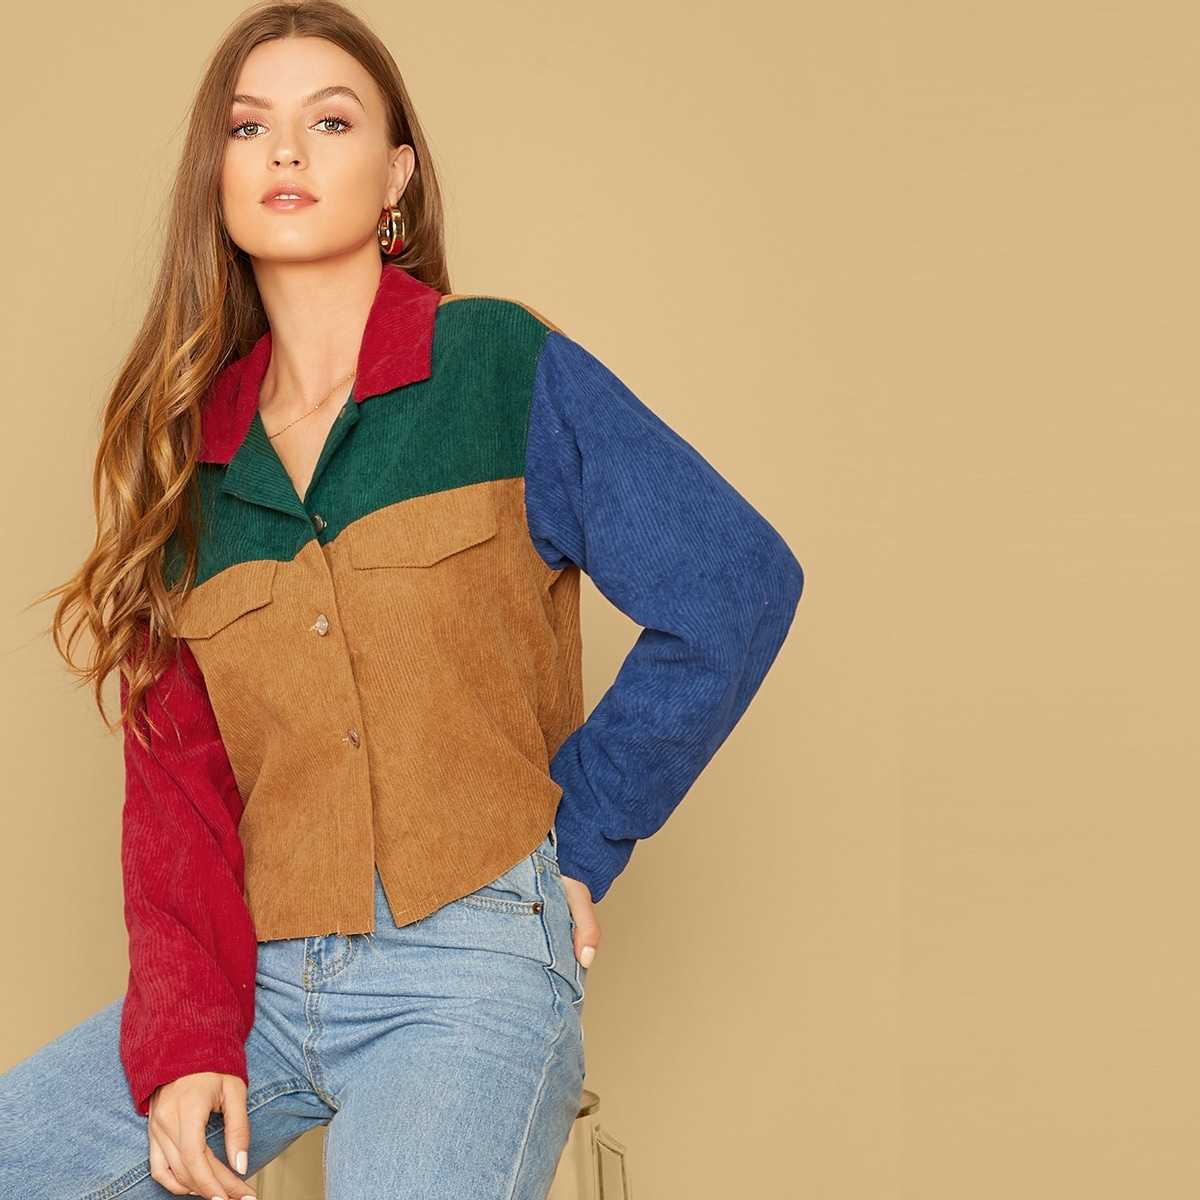 Flap Detail Colorblock Corduroy Jacket in Multicolor Bright by ROMWE on GOOFASH